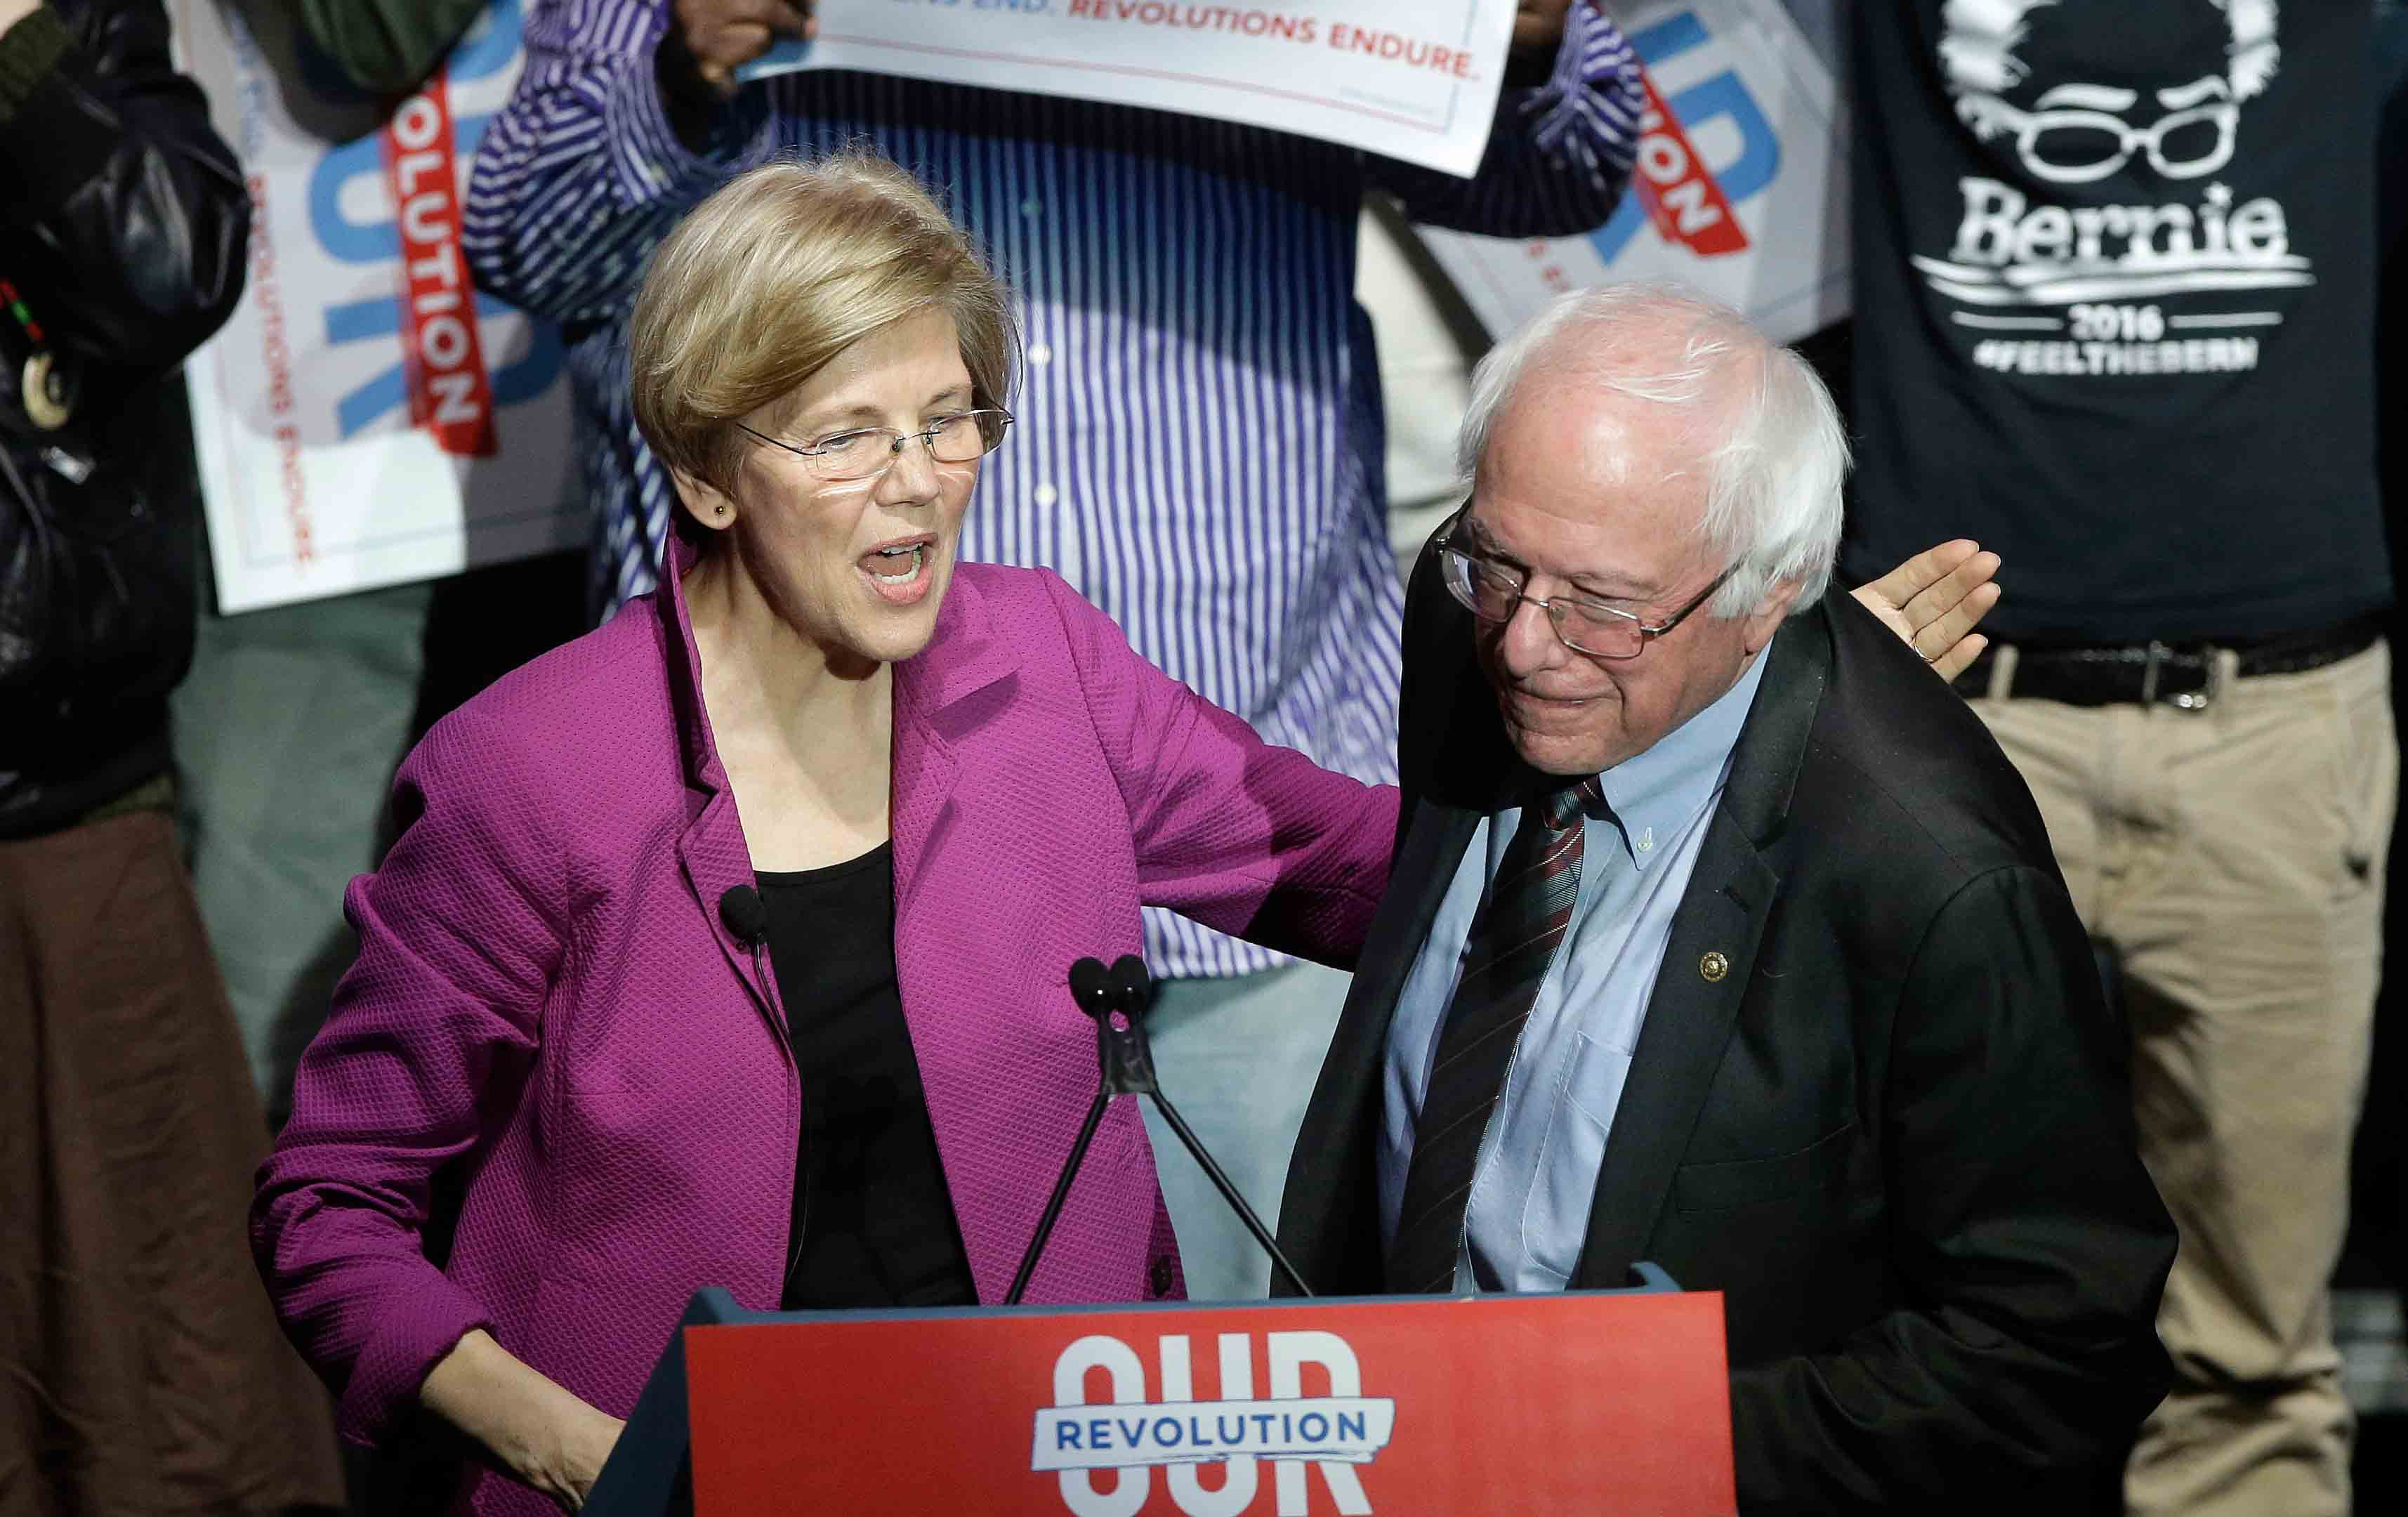 What Is The Difference: Bernie Sanders or Elizabeth Warren